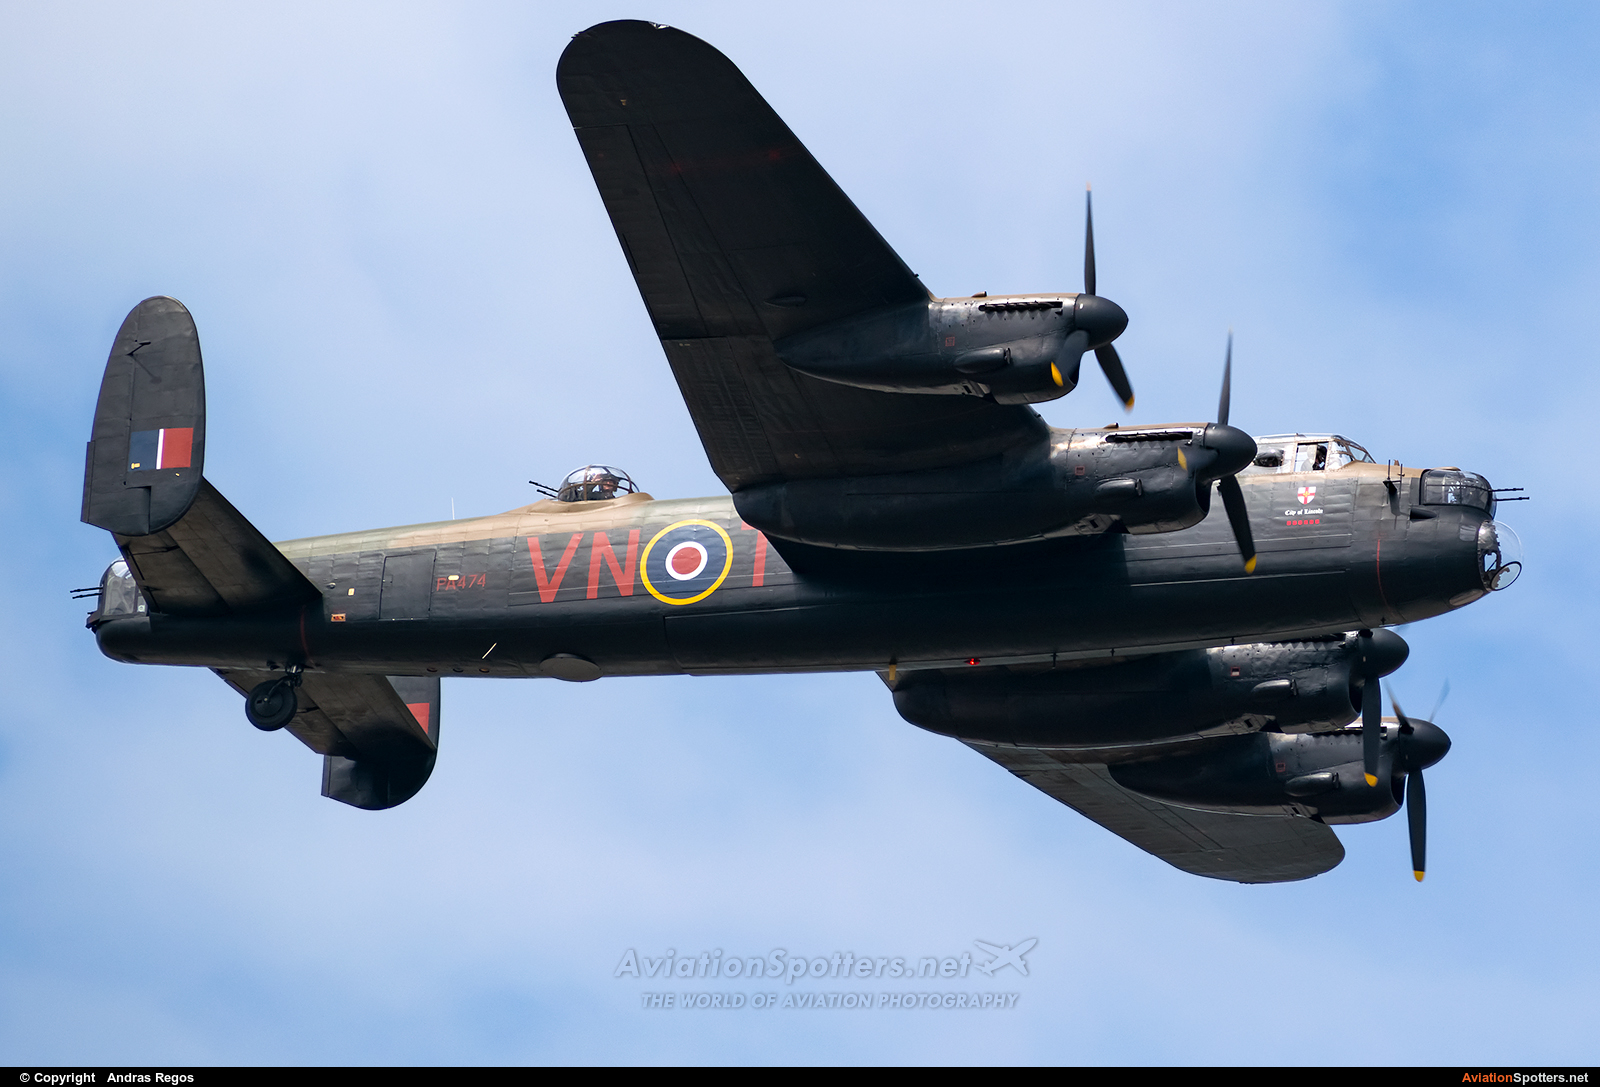 UK - Air Force: Battle of Britain Memorial Flight  -  683 Lancaster B. I  (PA474) By Andras Regos (regos)